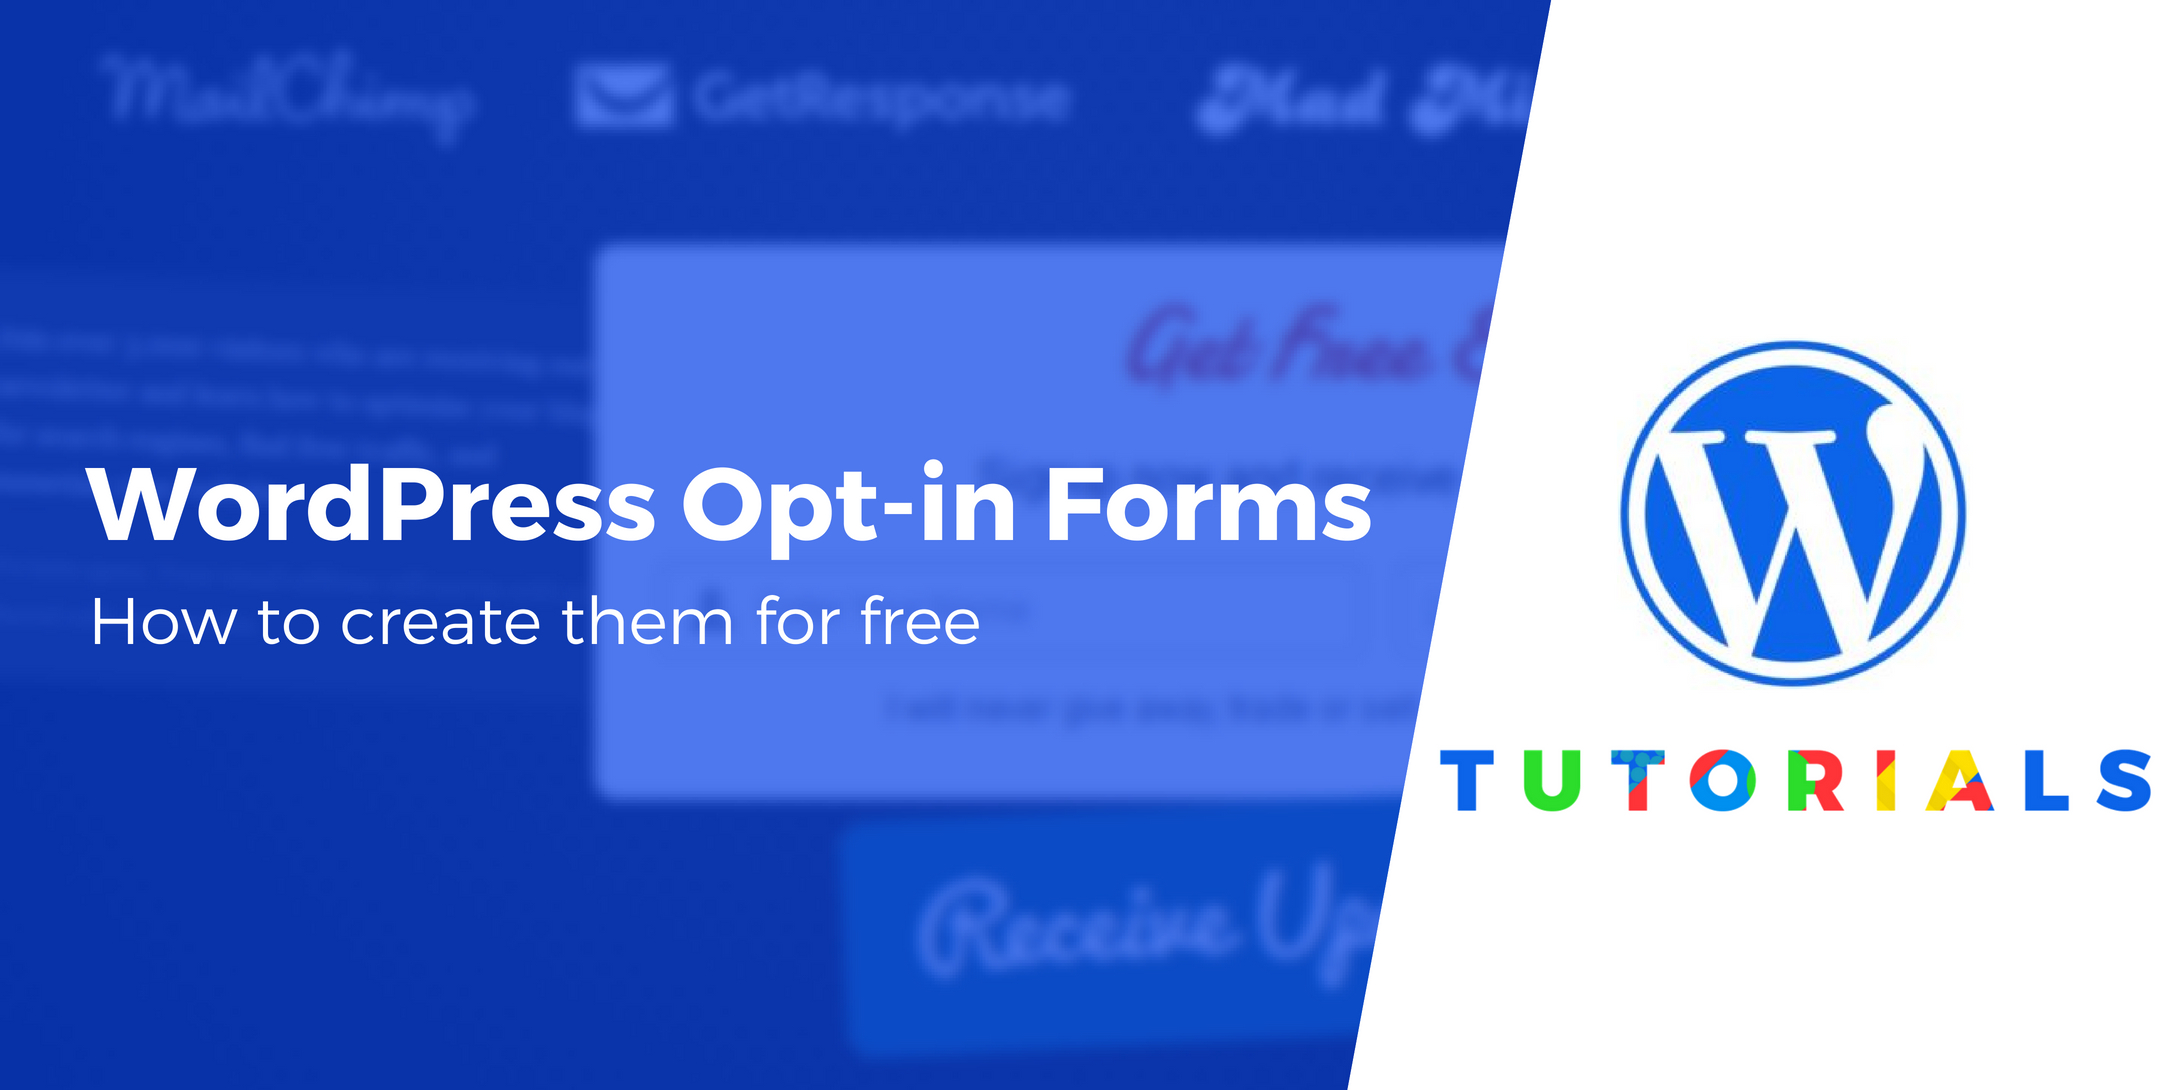 WordPress opt-in forms